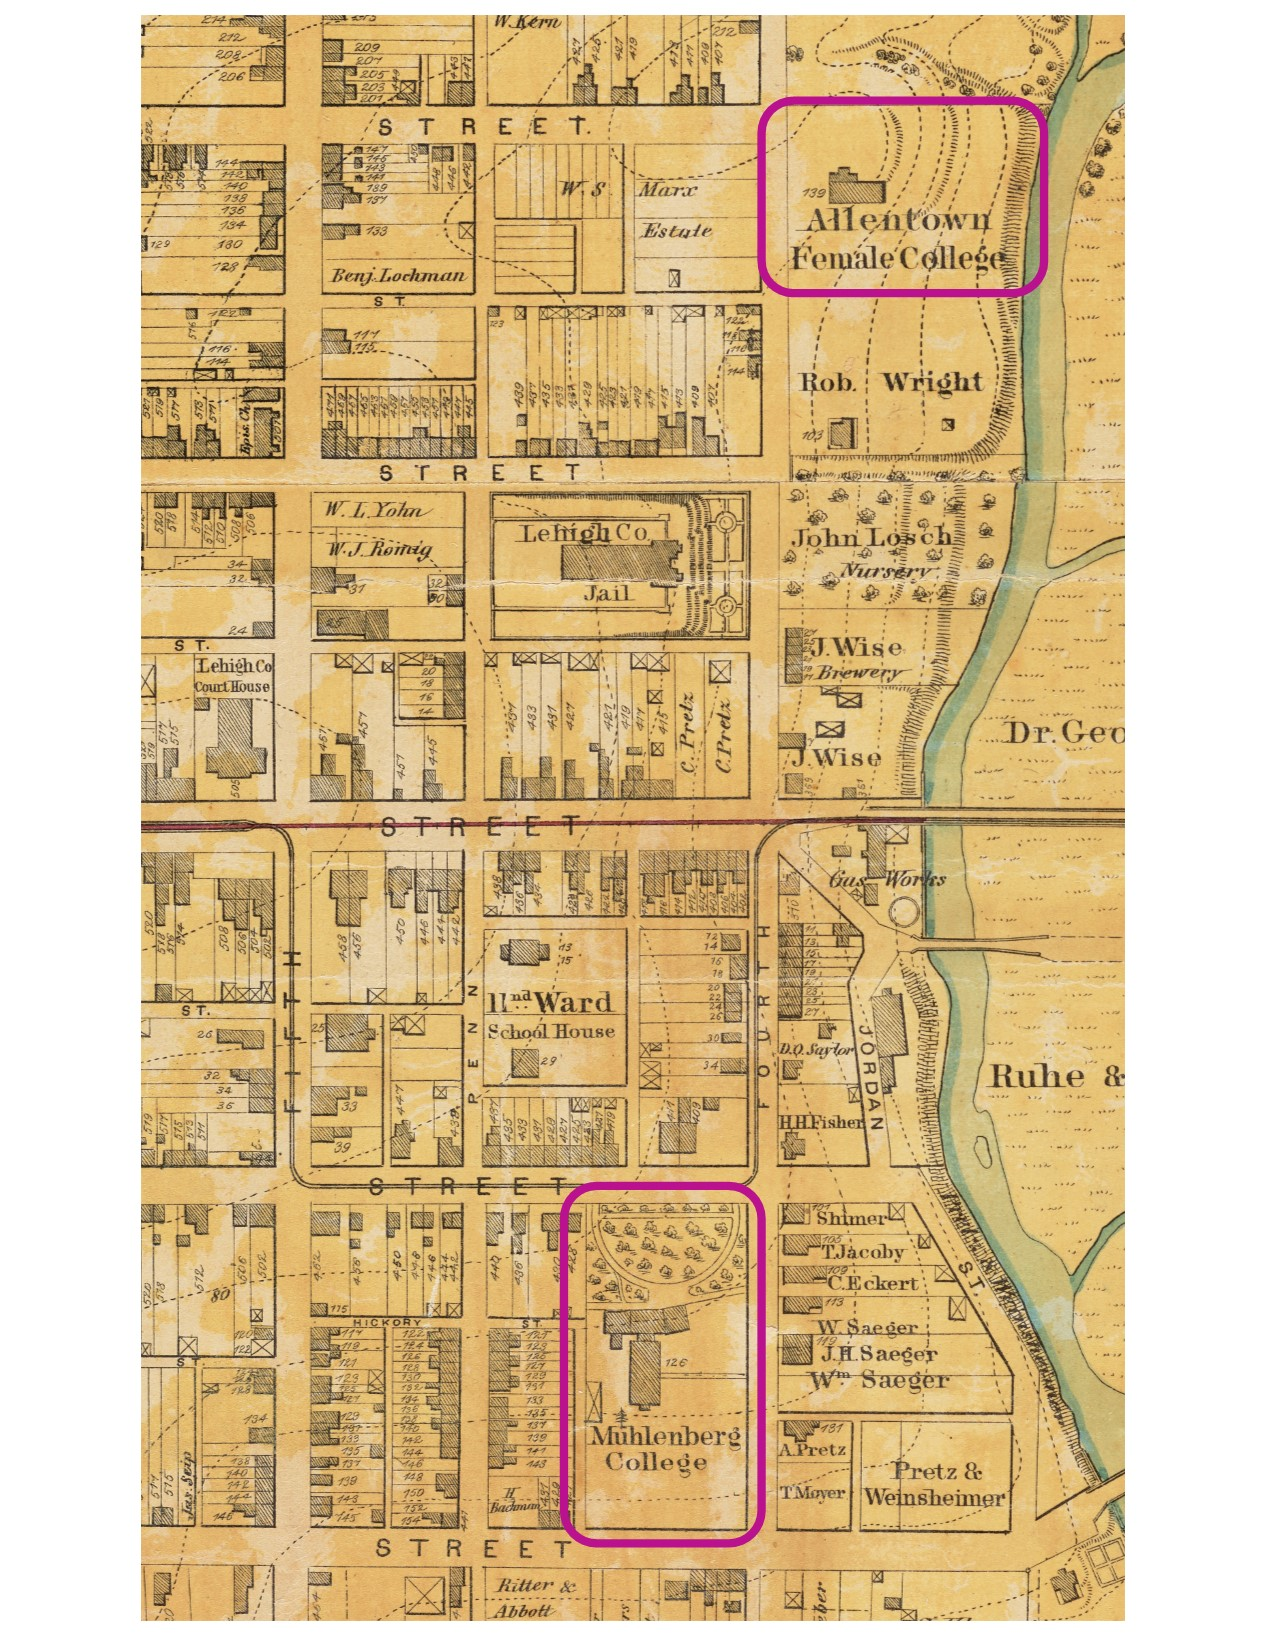 Map of the Proximity of Muhlenberg College and Allentown Female College, 1870